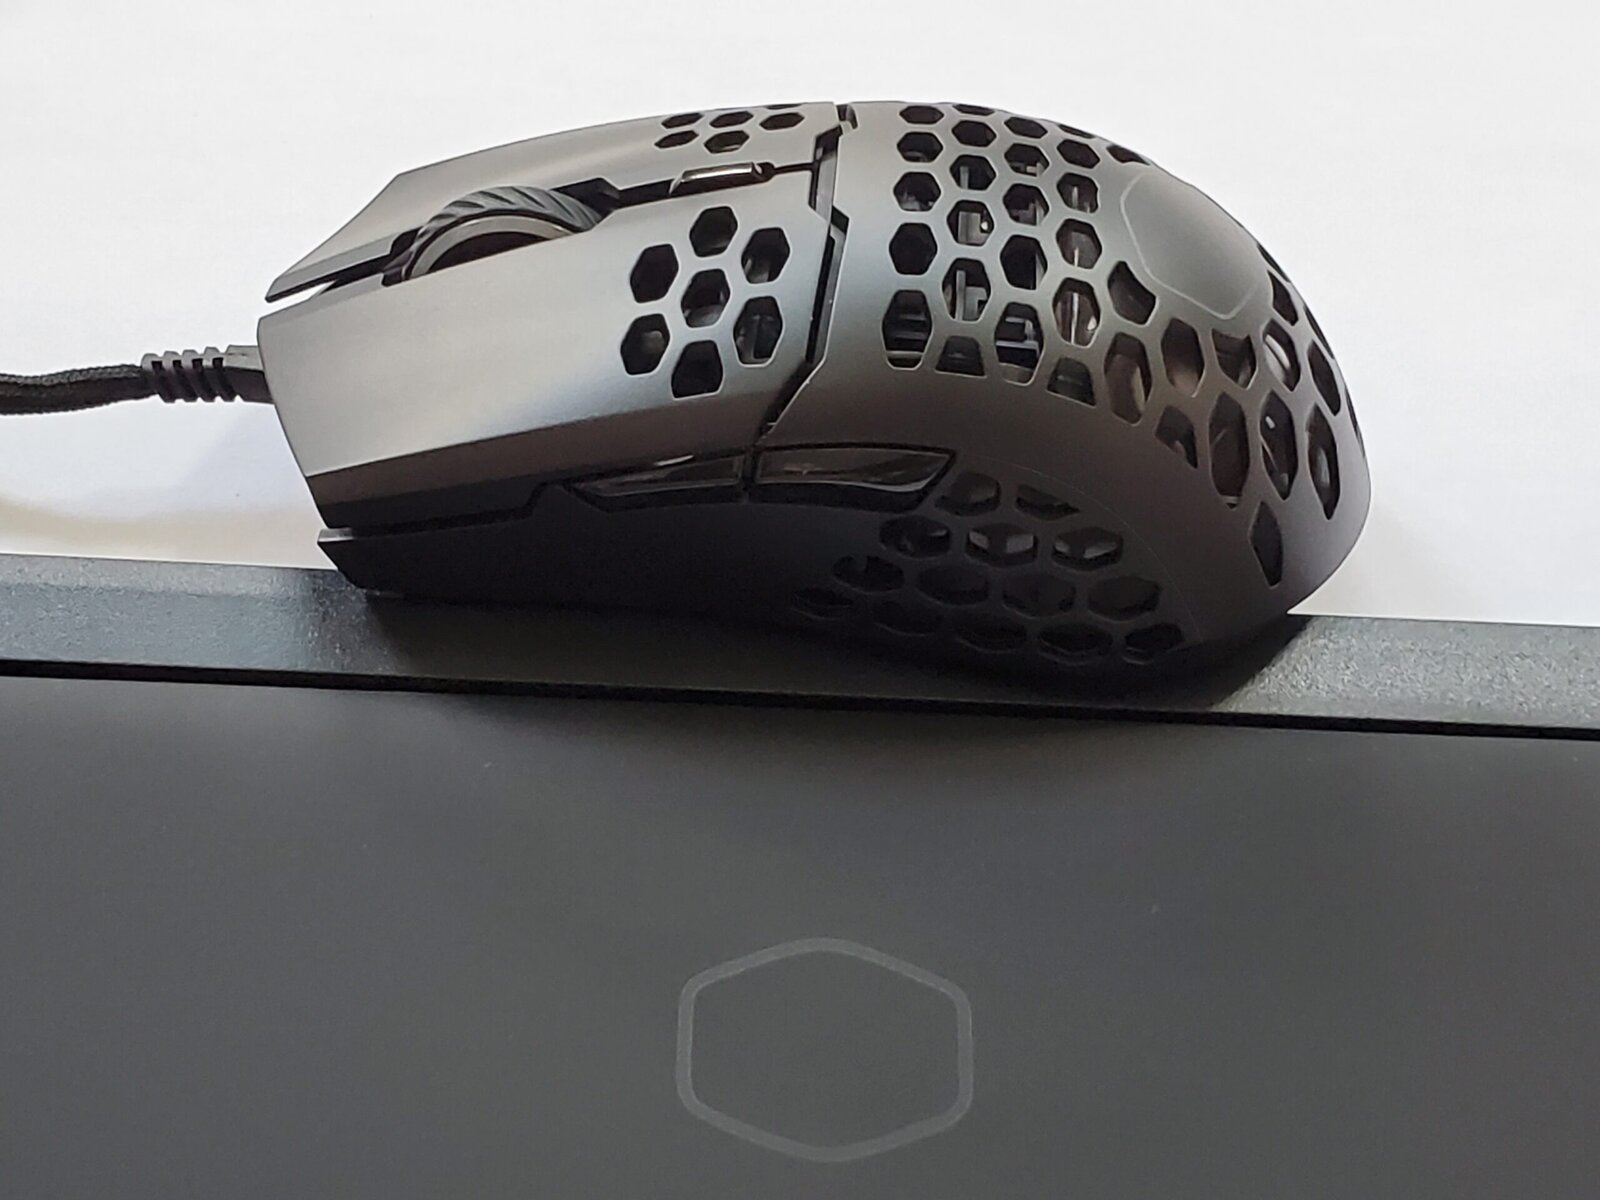 Cooler Master M711 Gaming Mouse (3)